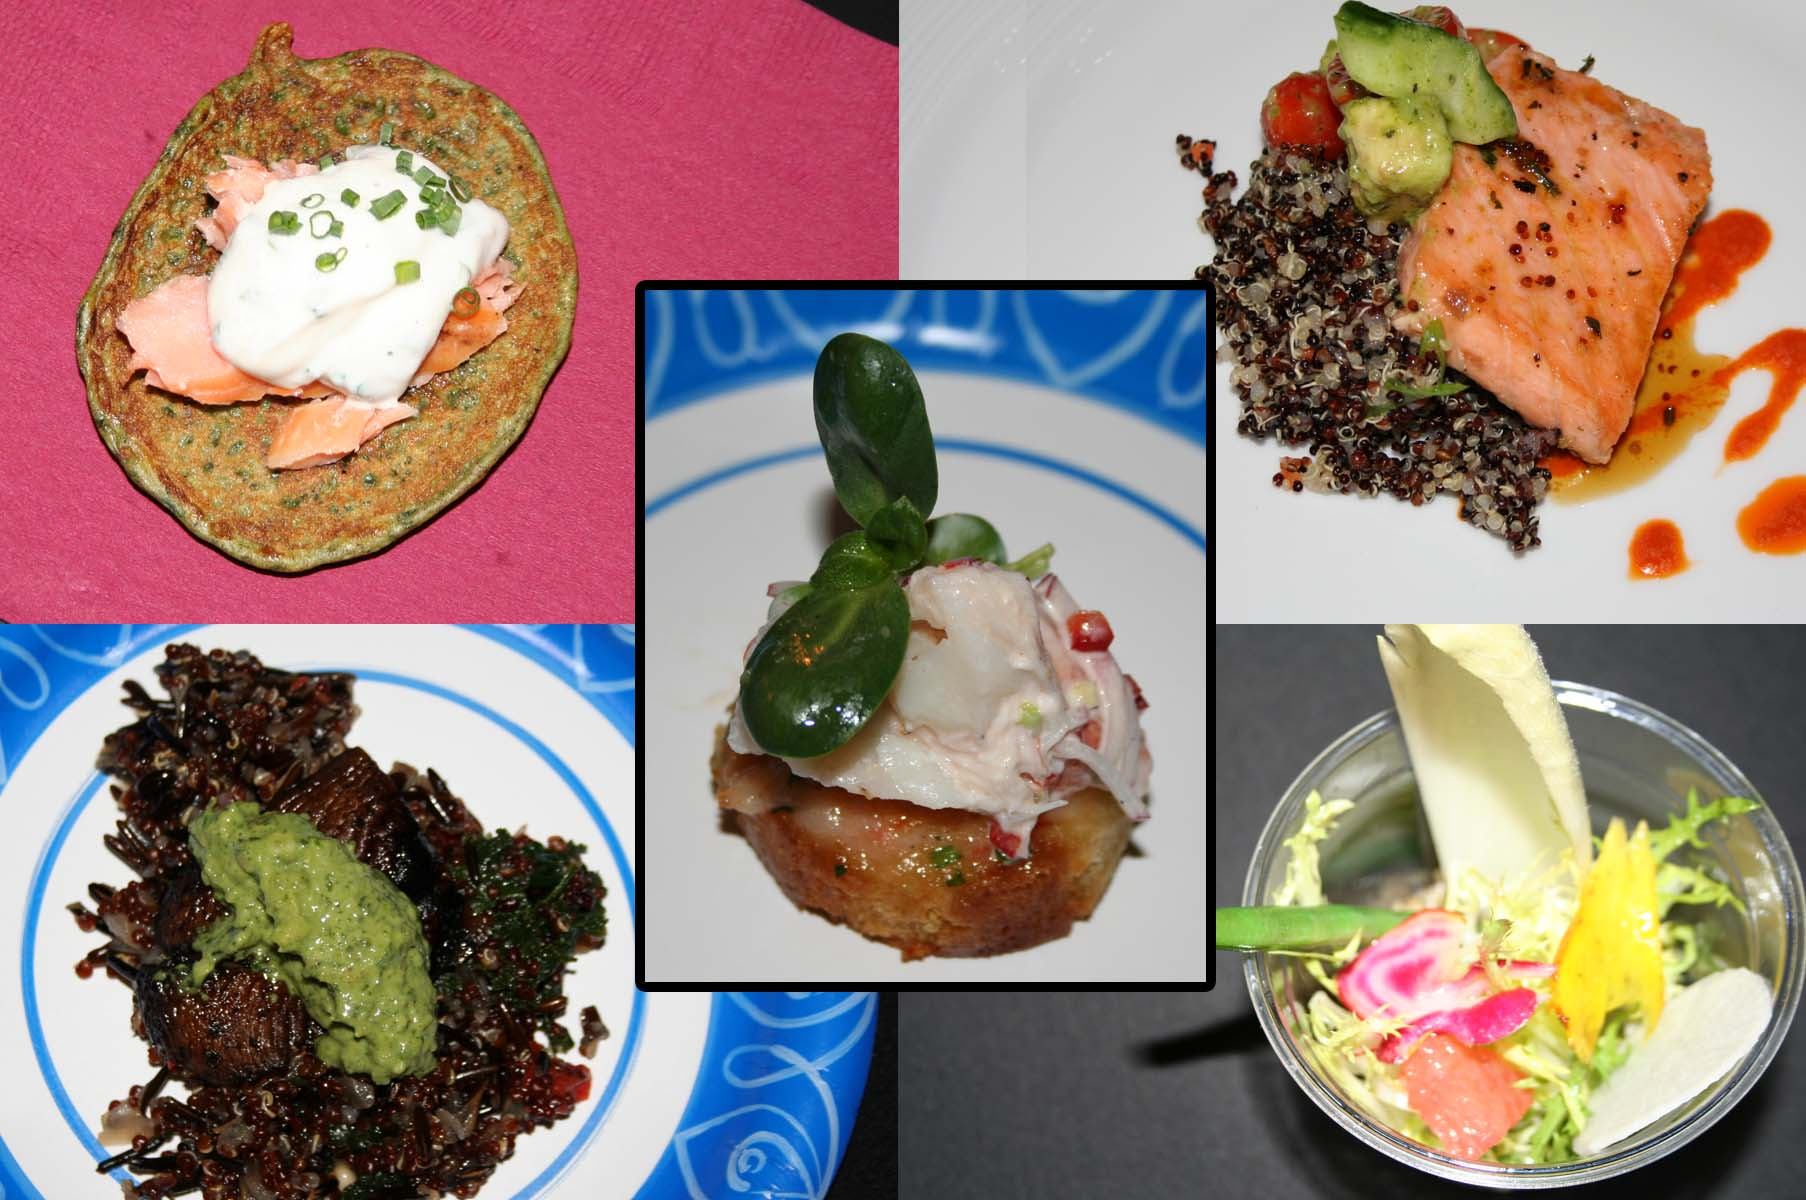 The dishes (clockwise from upper left): house-smoked salmon on Swiss chard pancake, maple-glazed salmon with quinoa,  crudité salad, red quinoa pilaf with grilled portabella mushroom and pumpkin seed pesto and the winner, lobster toast. (Photos: Mark Heckathorn/DC on Heels)